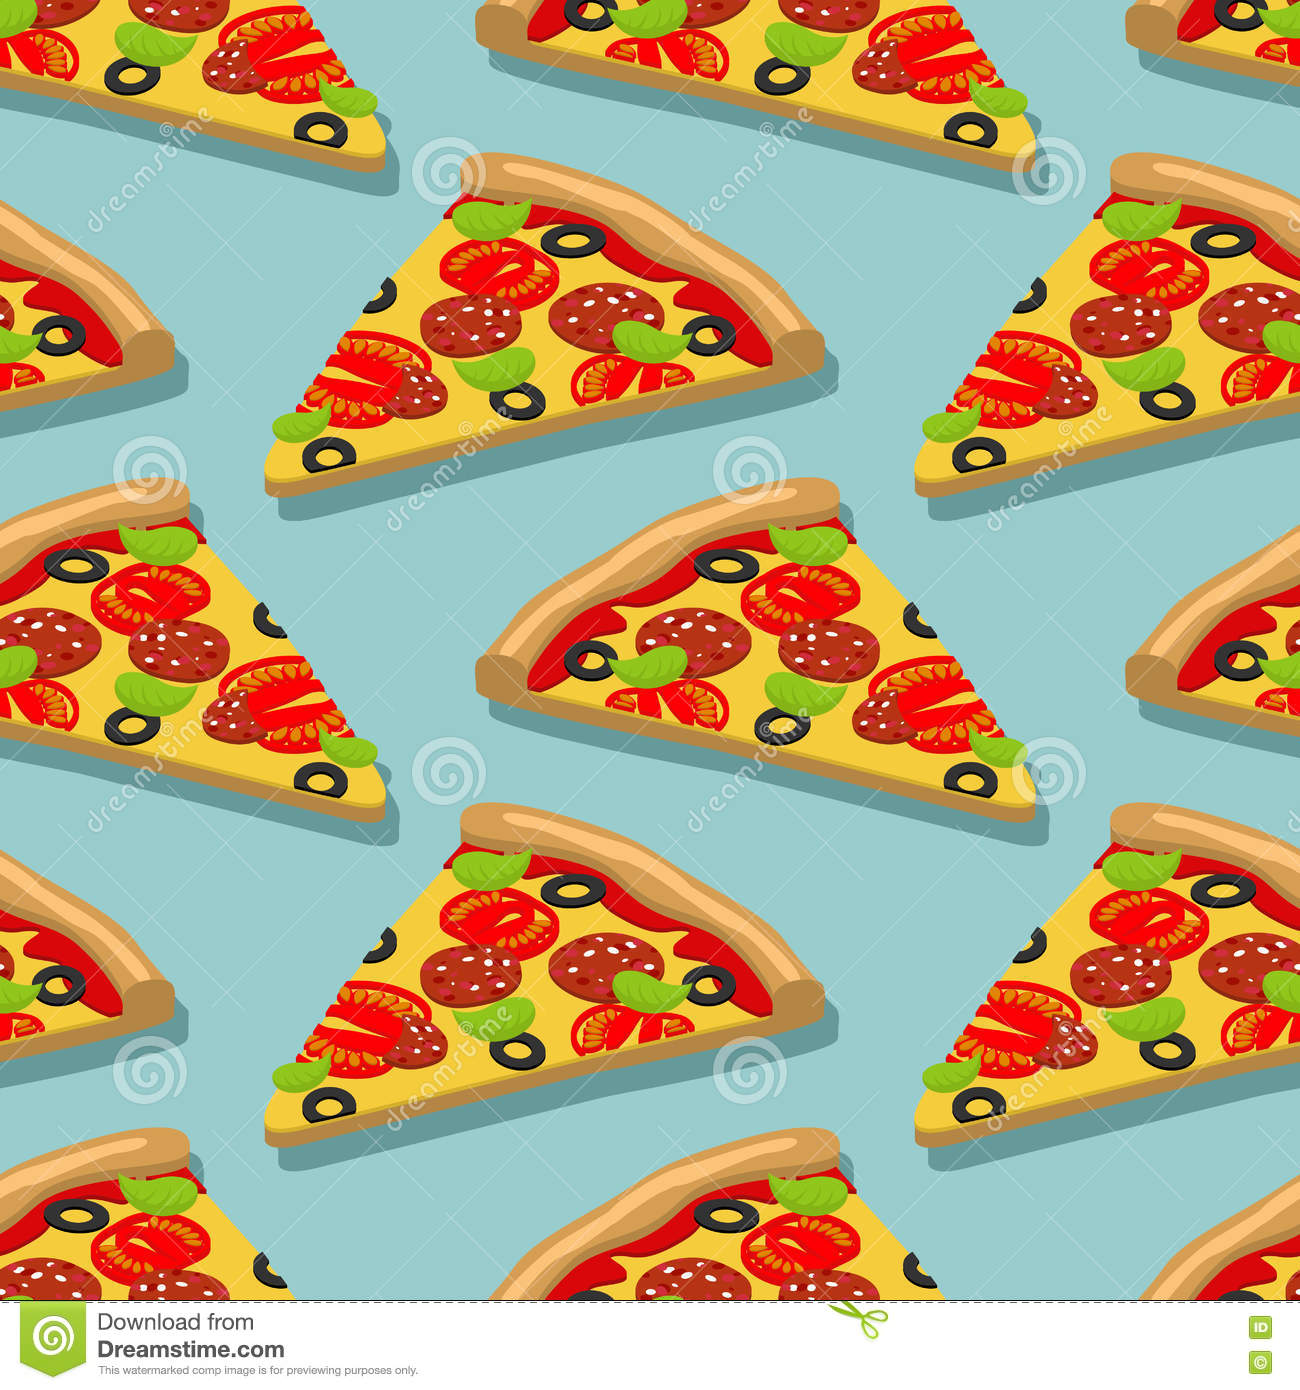 repeating pizza background - photo #21